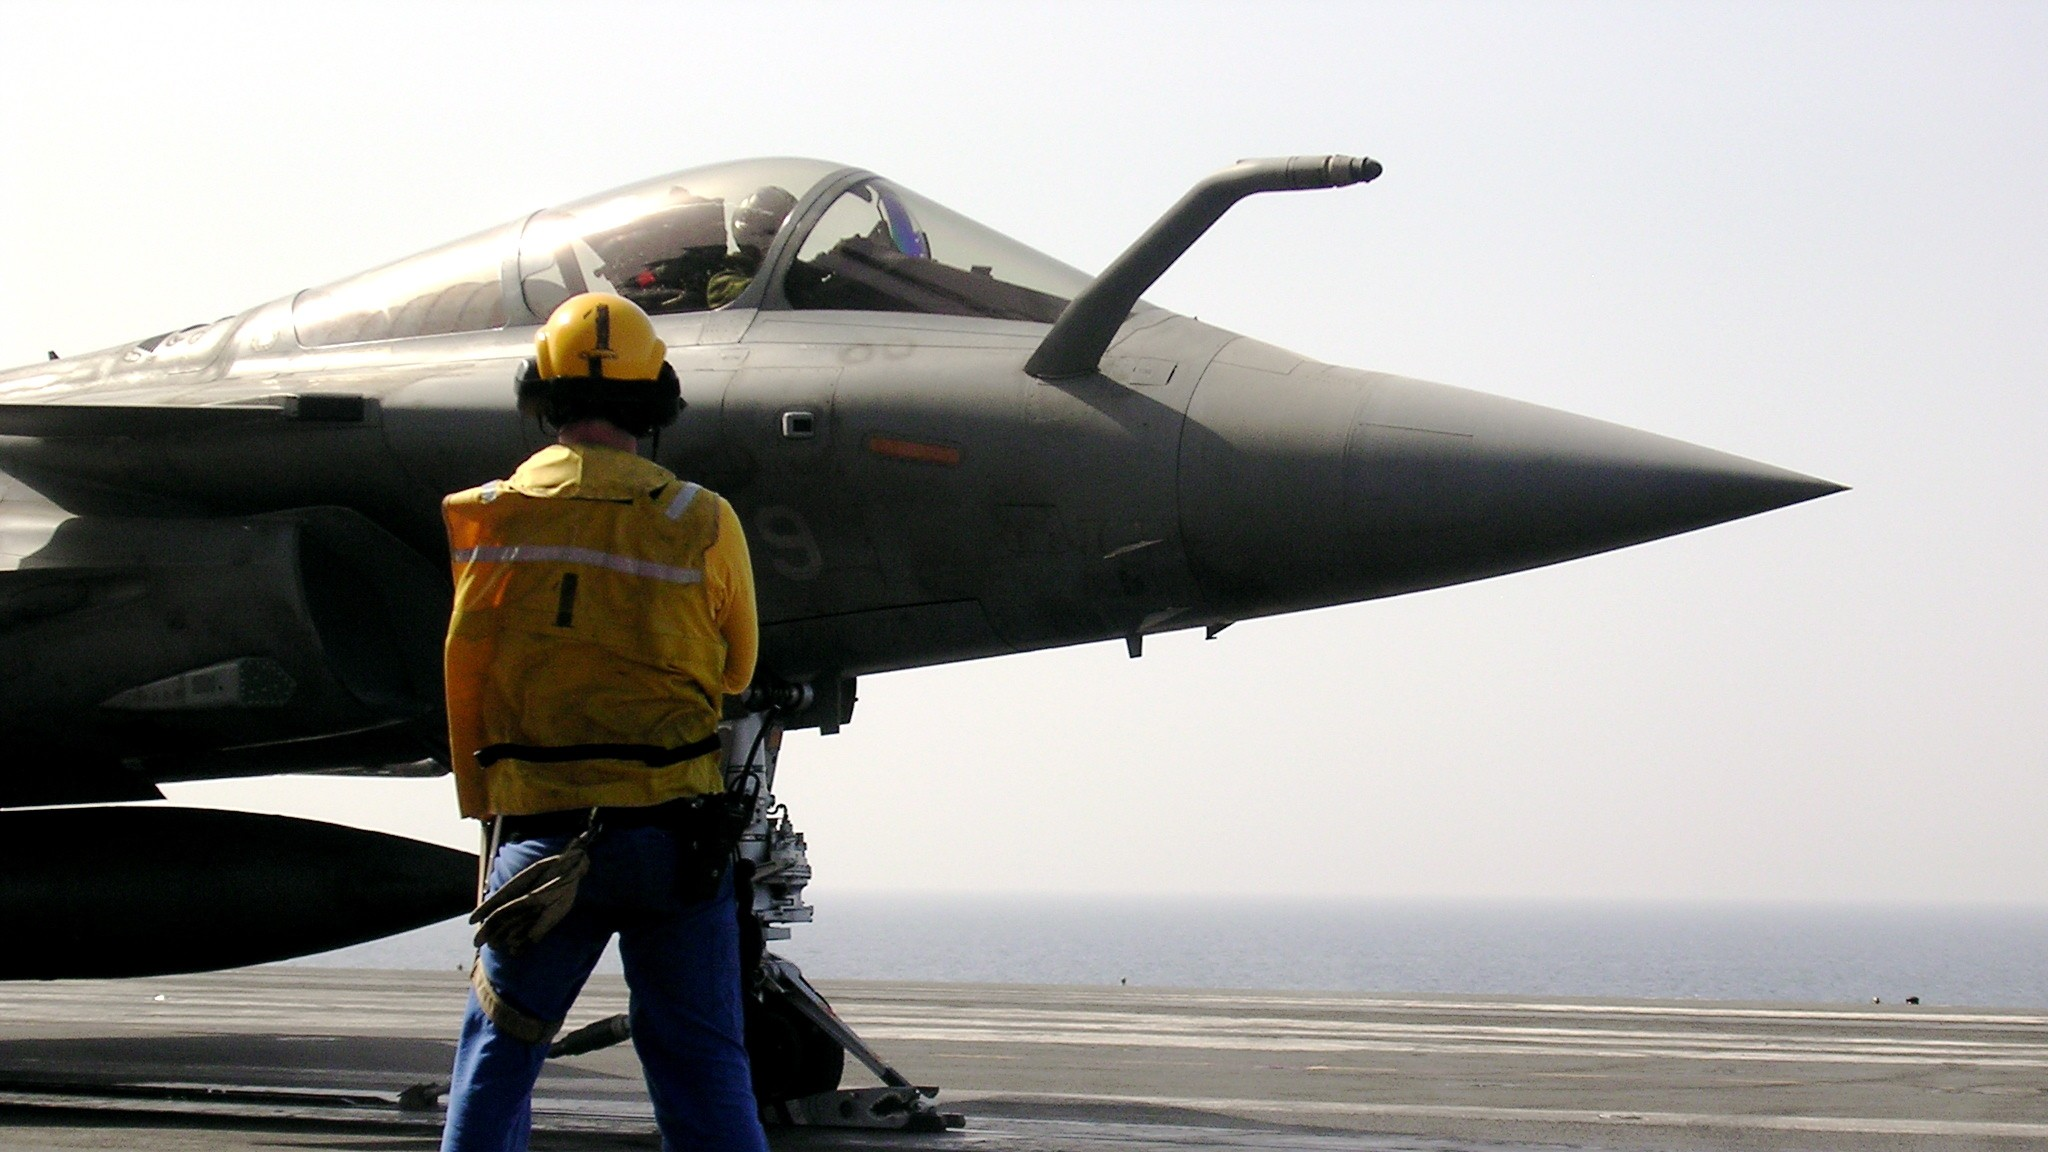 France's Largest Warship Has Officially Joined the Fight Against the Islamic State